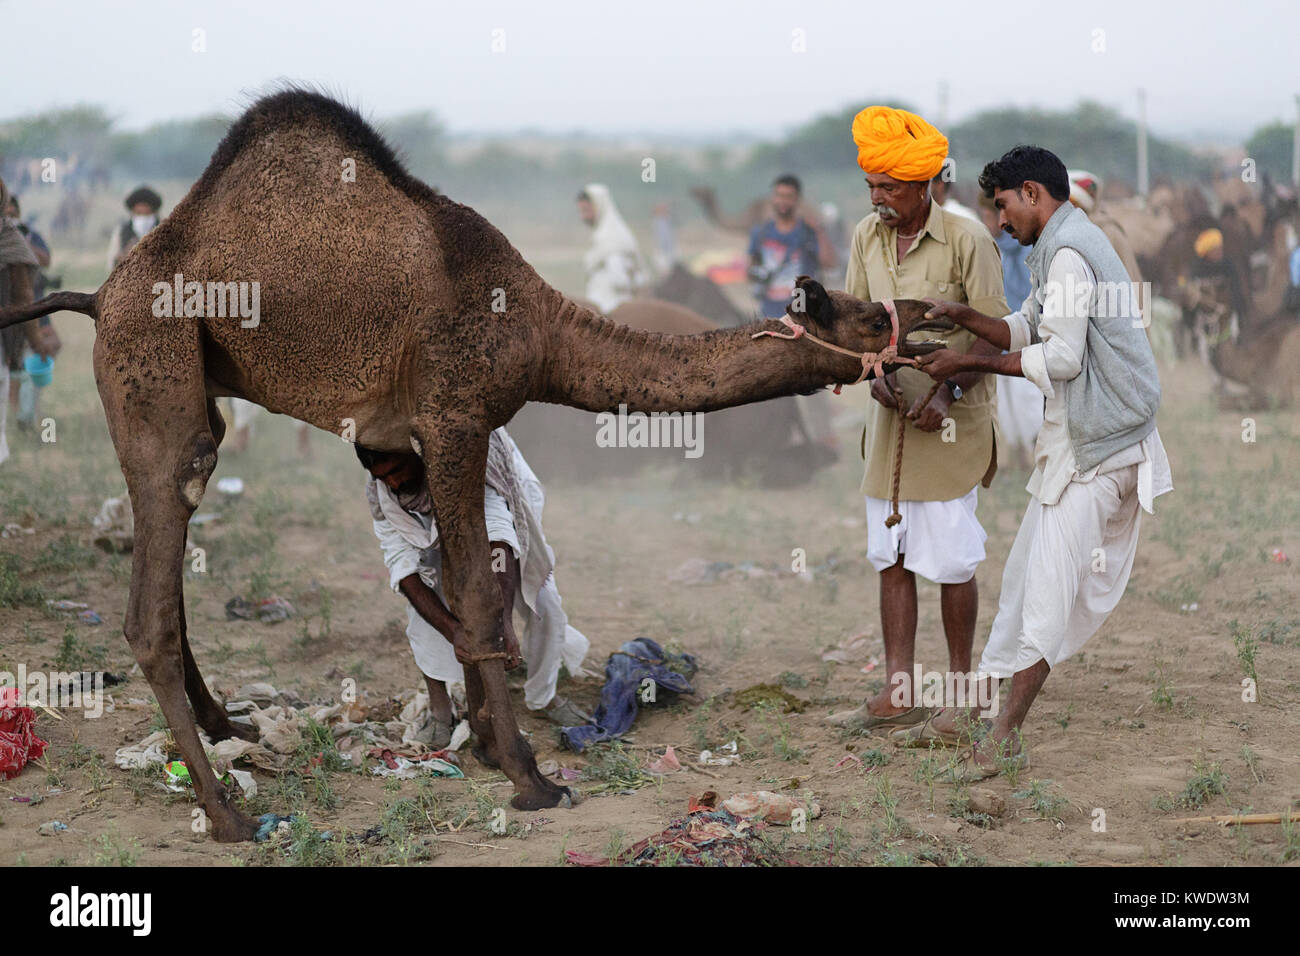 Scene at Pushkar Camel Fair, trader trying to tame disobedient camel, Rajasthan, India - Stock Image